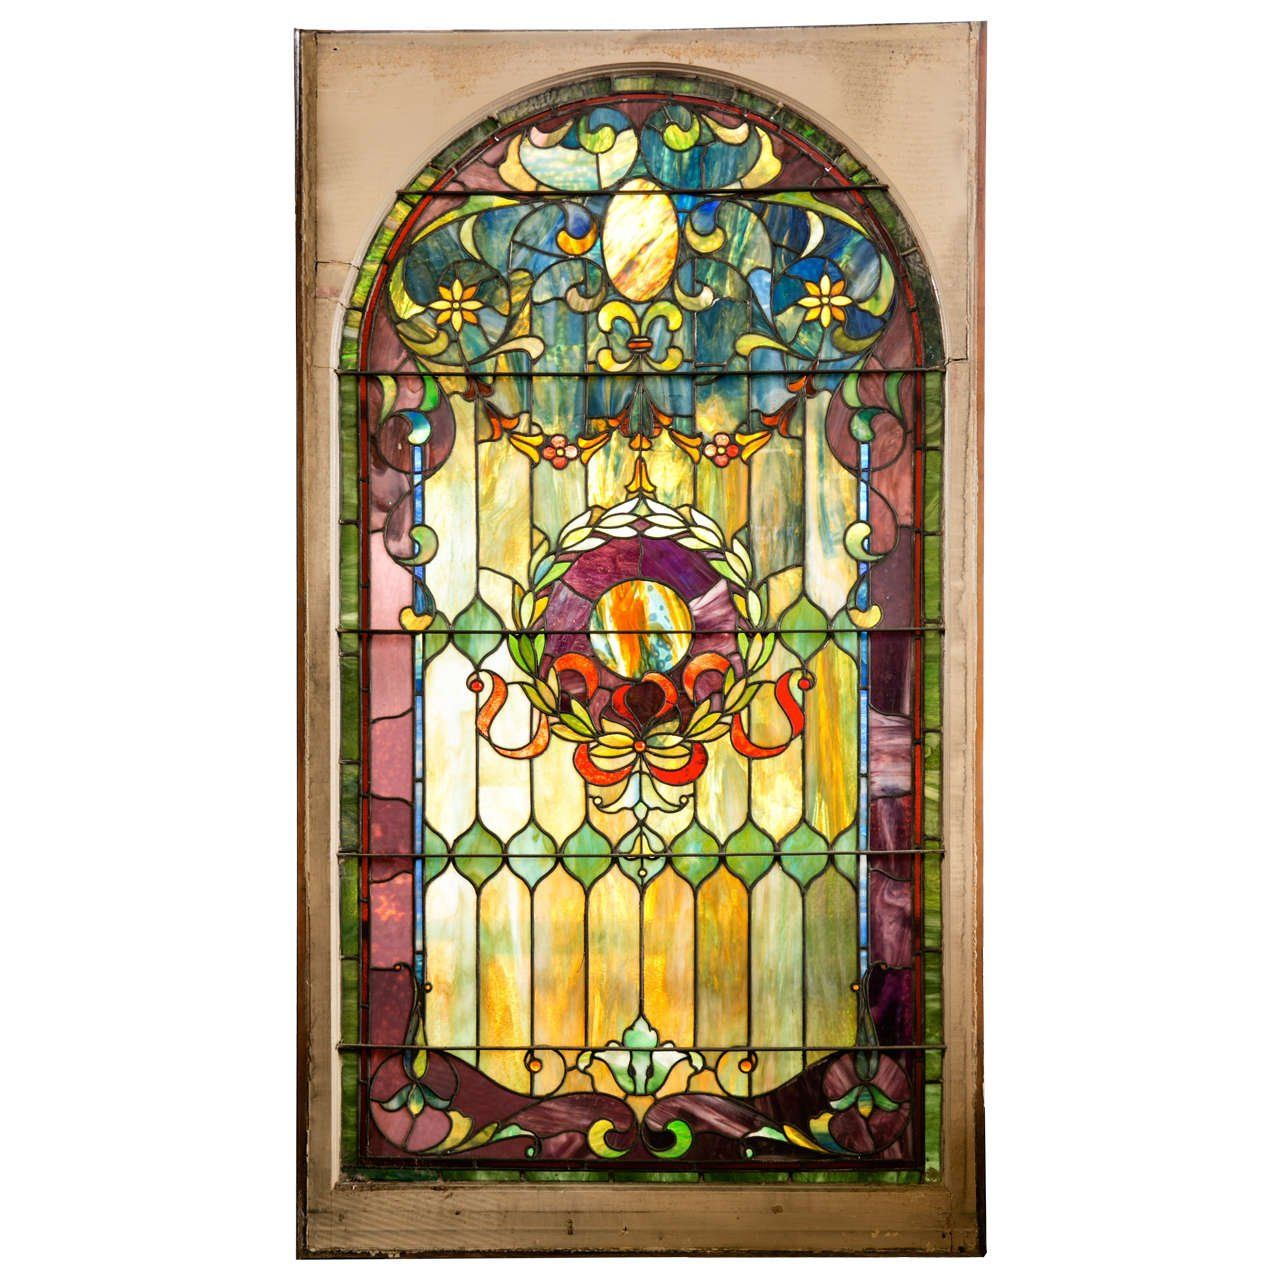 This Large Antique Stained Gl Window